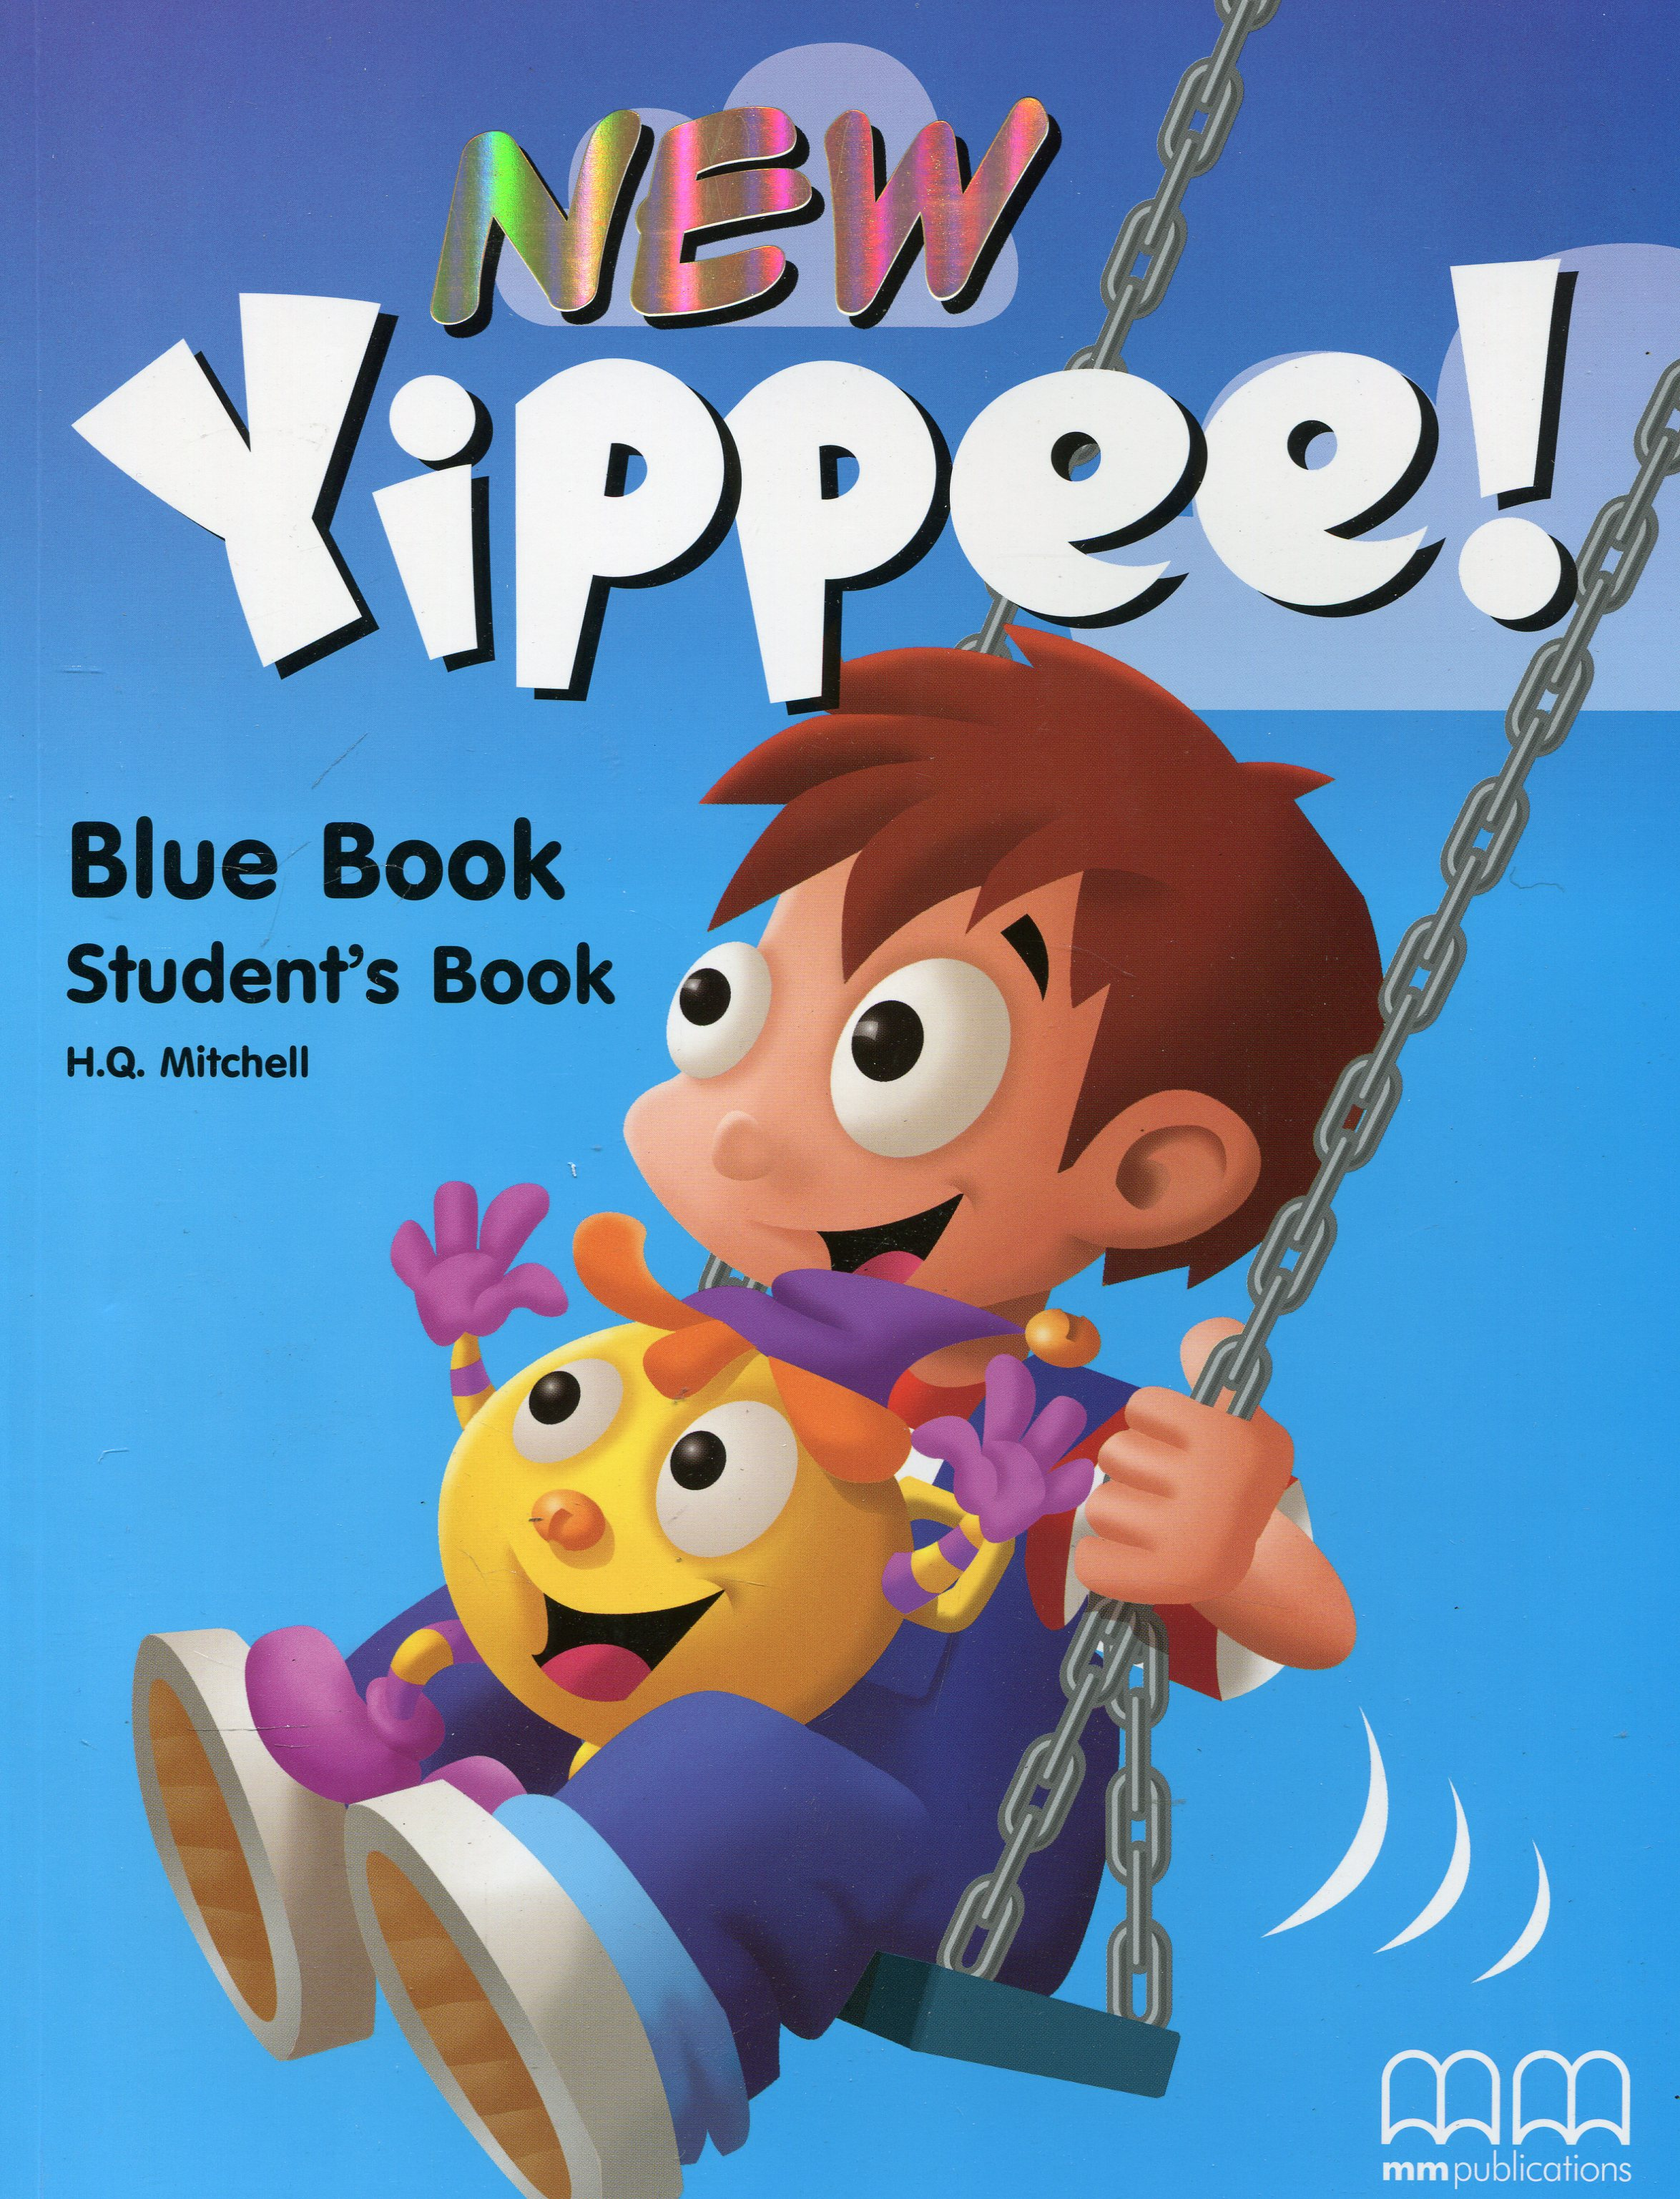 New  Yippee! Blue Book. Student's Book